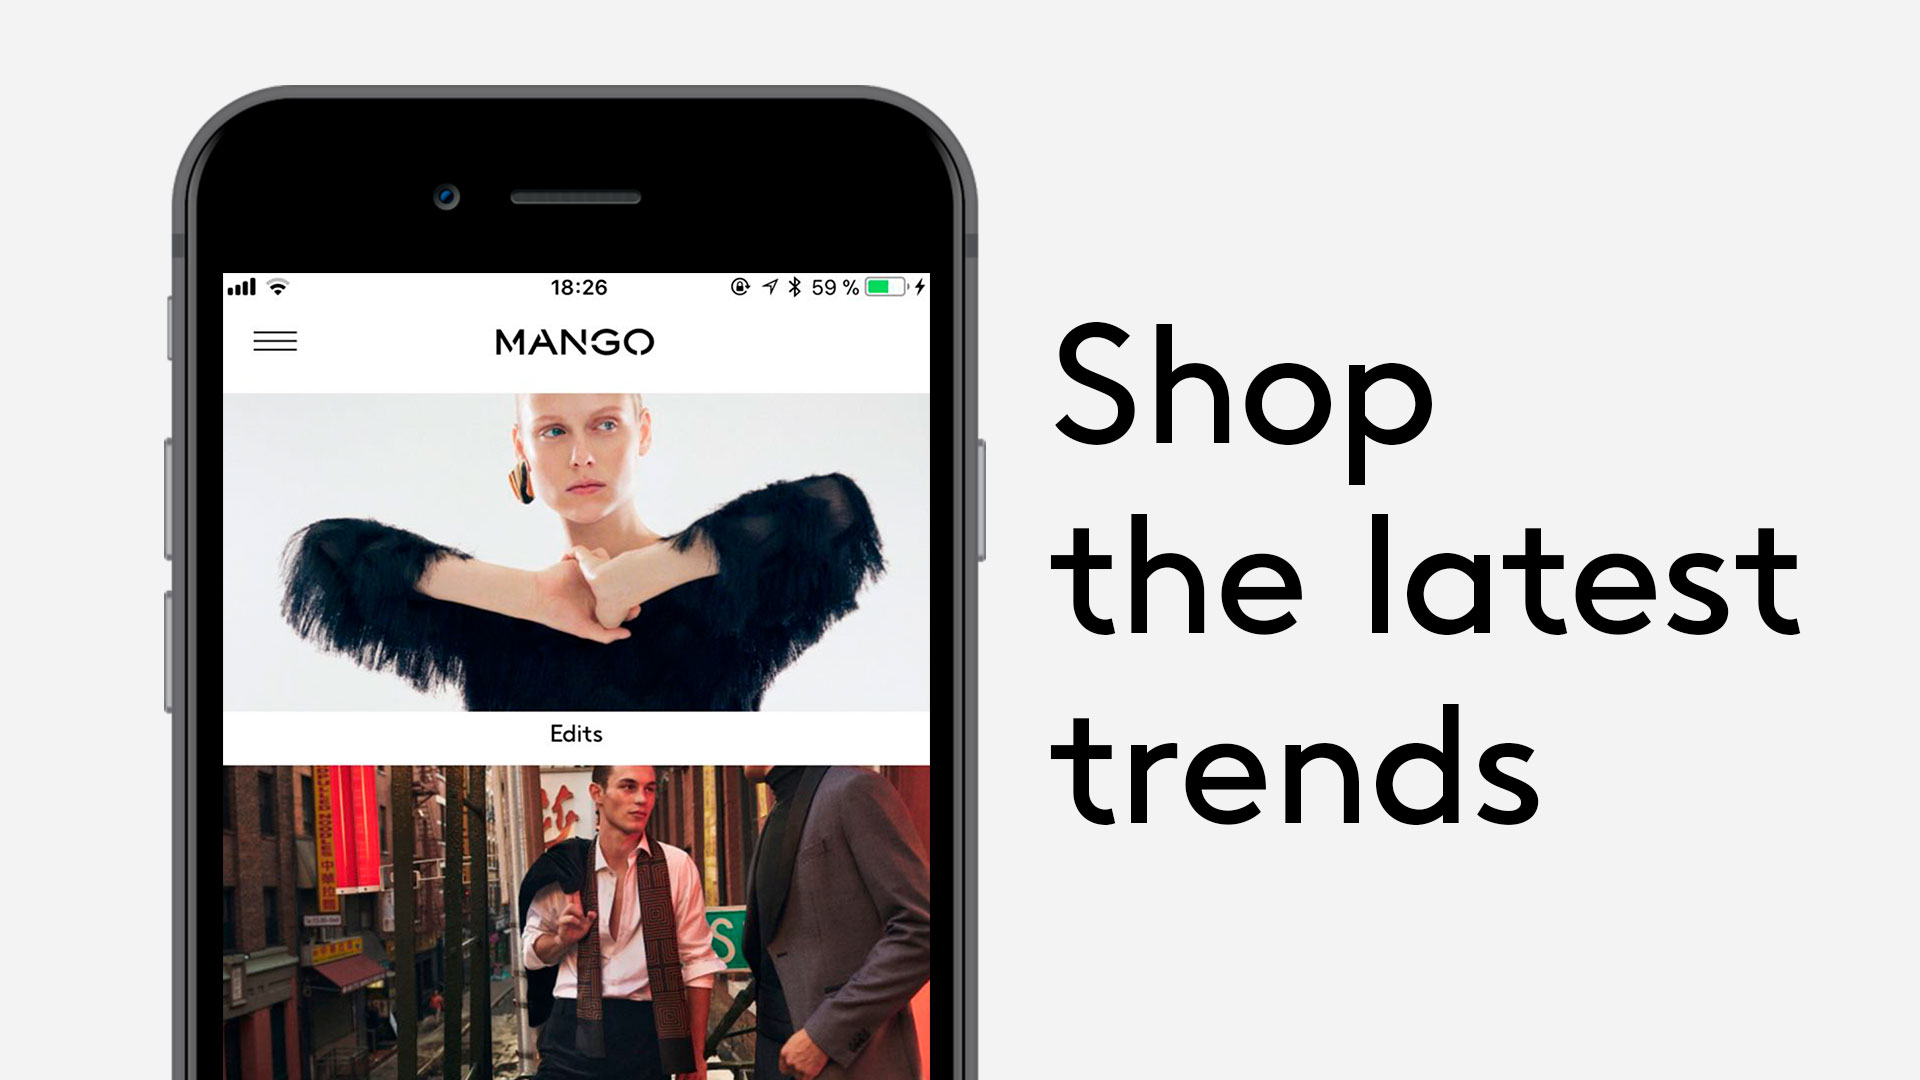 Mango banner for the app